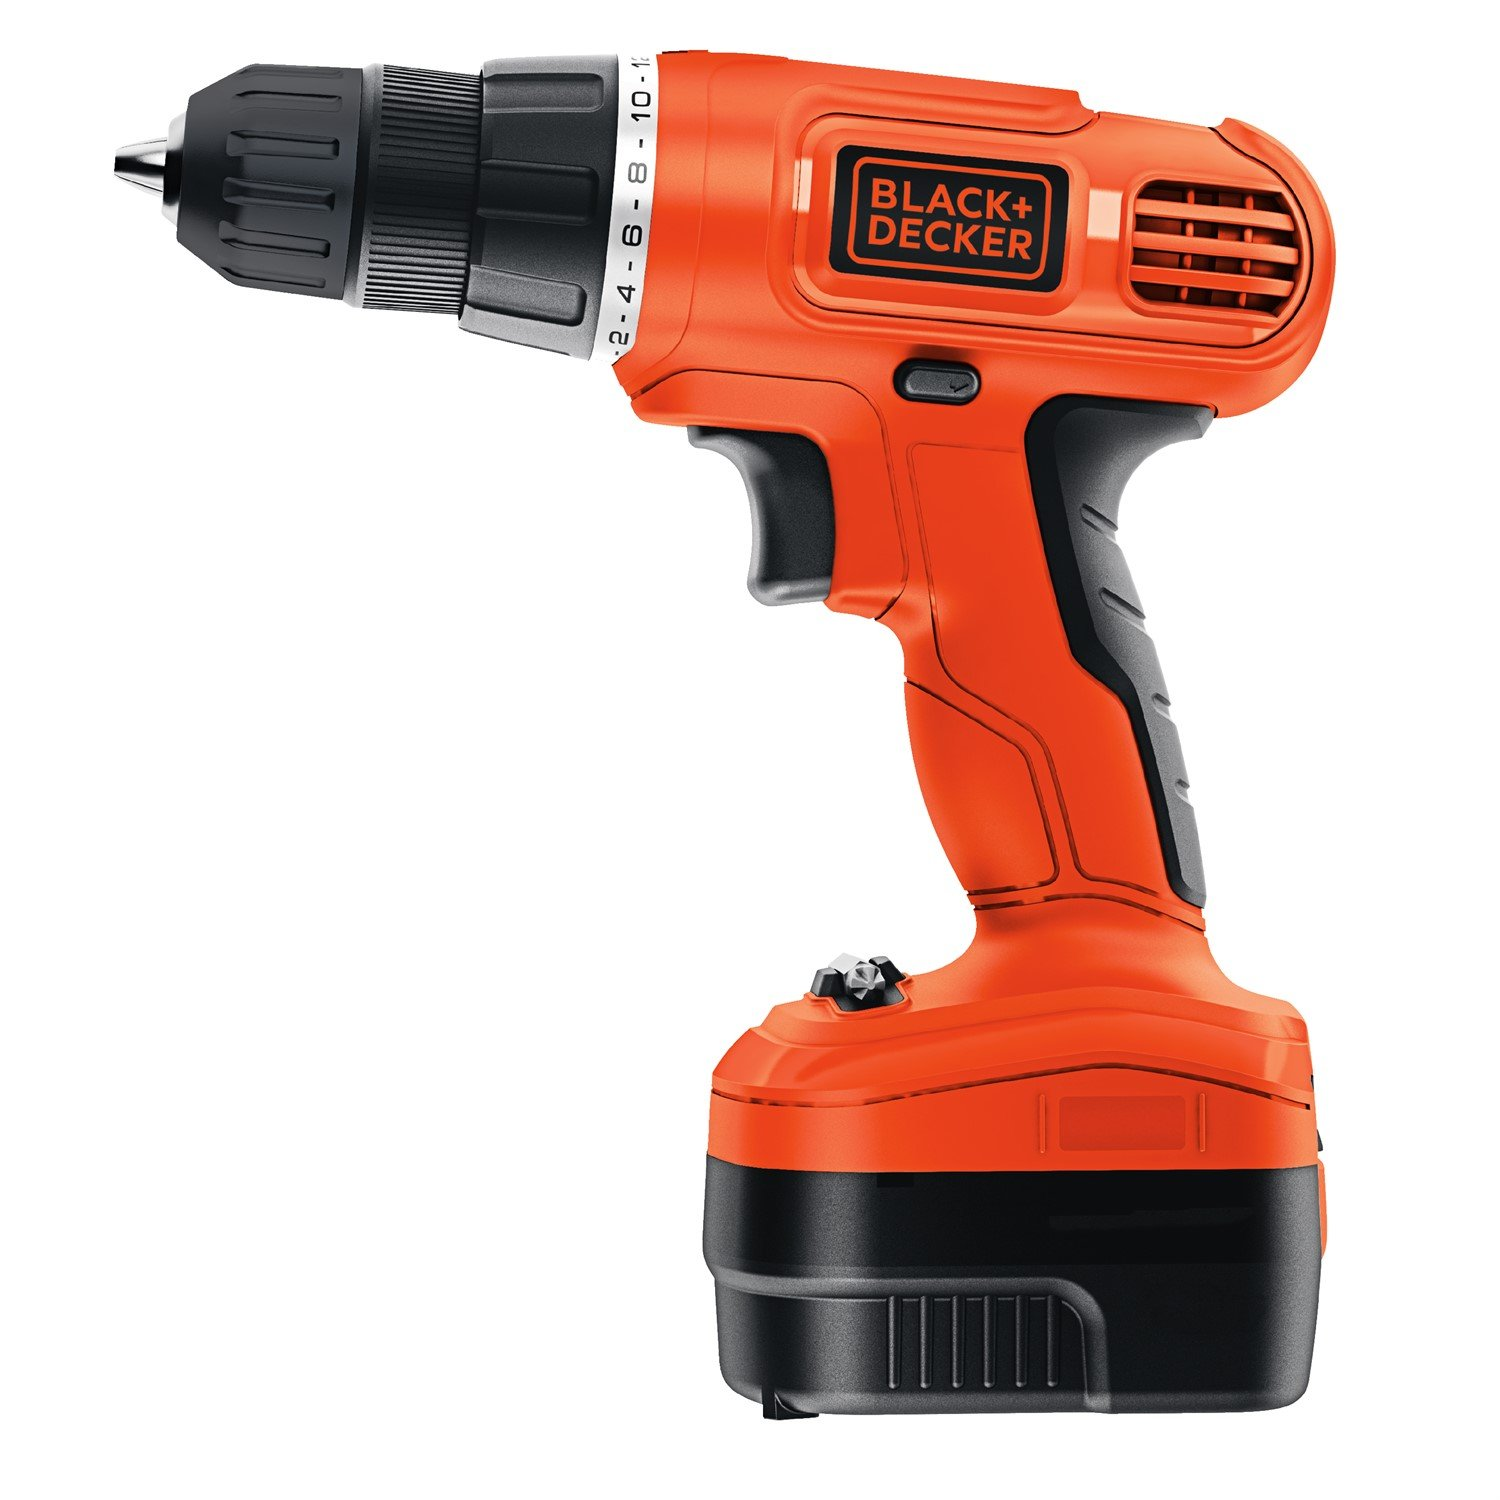 BLACK DECKER GCO1200C 12 volt Cordless Drill with Over Molds